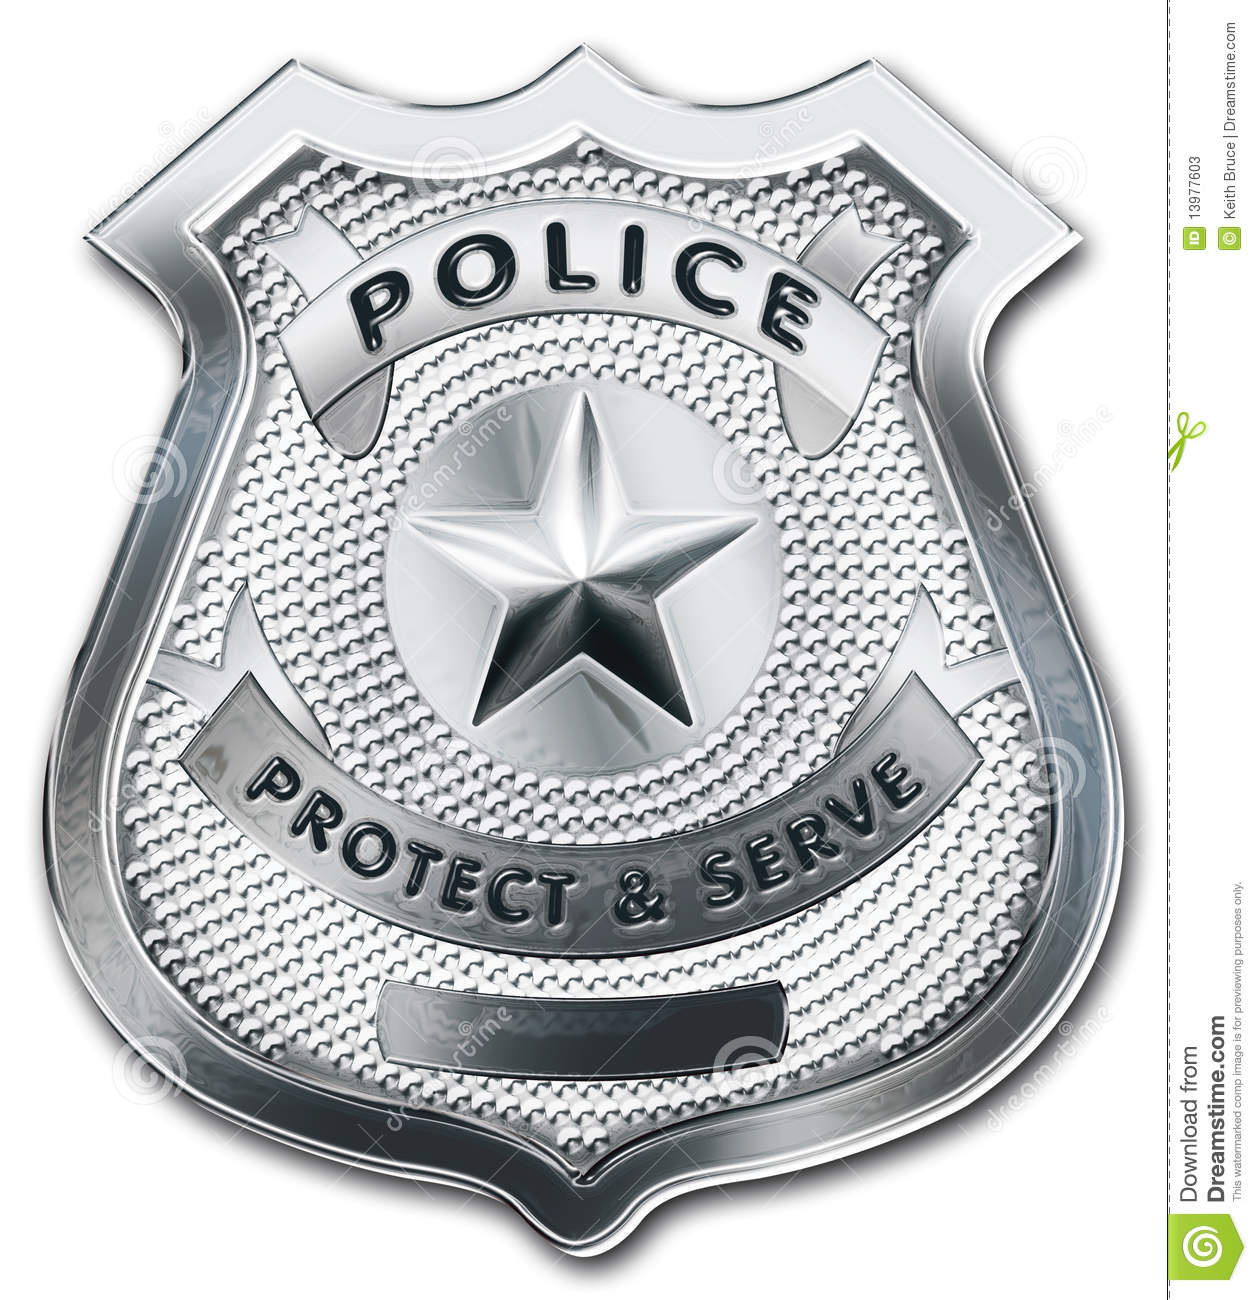 Shiny Metallic Police Officer Badge  Clipping Path Included